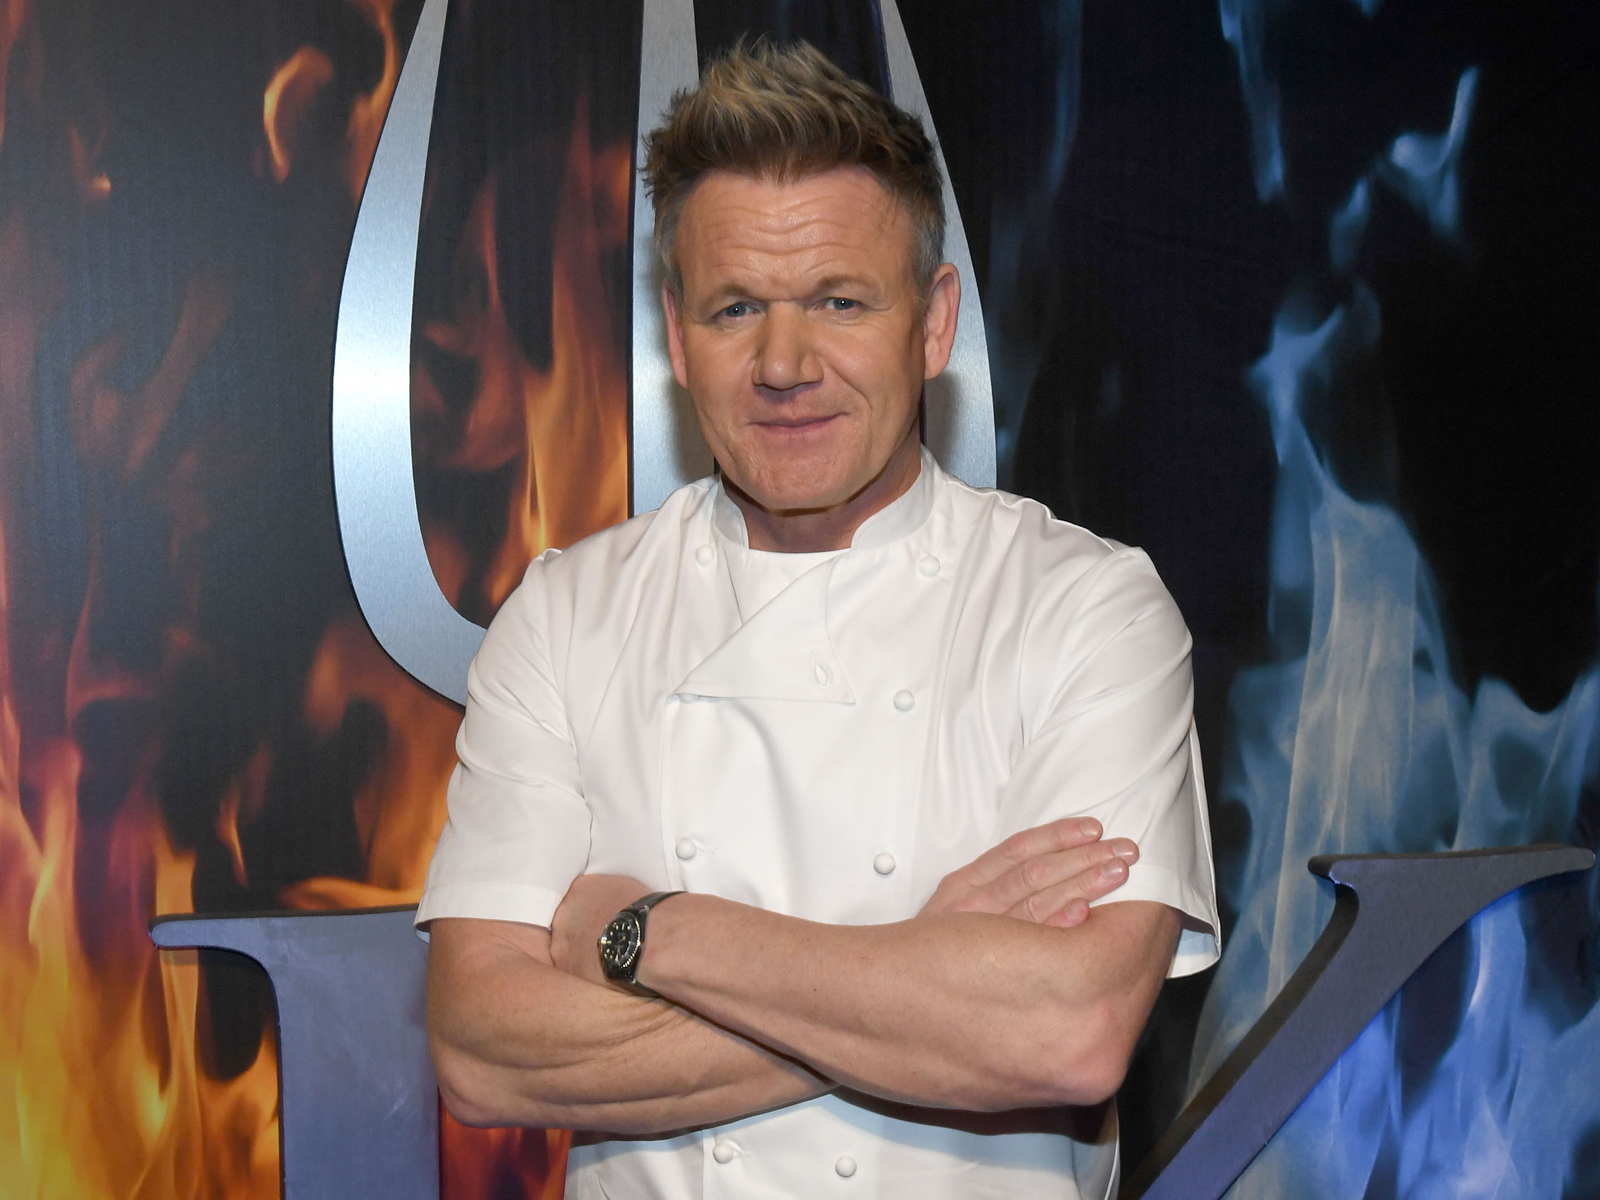 Gordon Ramsay Plans to Open 100 Restaurants in Next Five Years